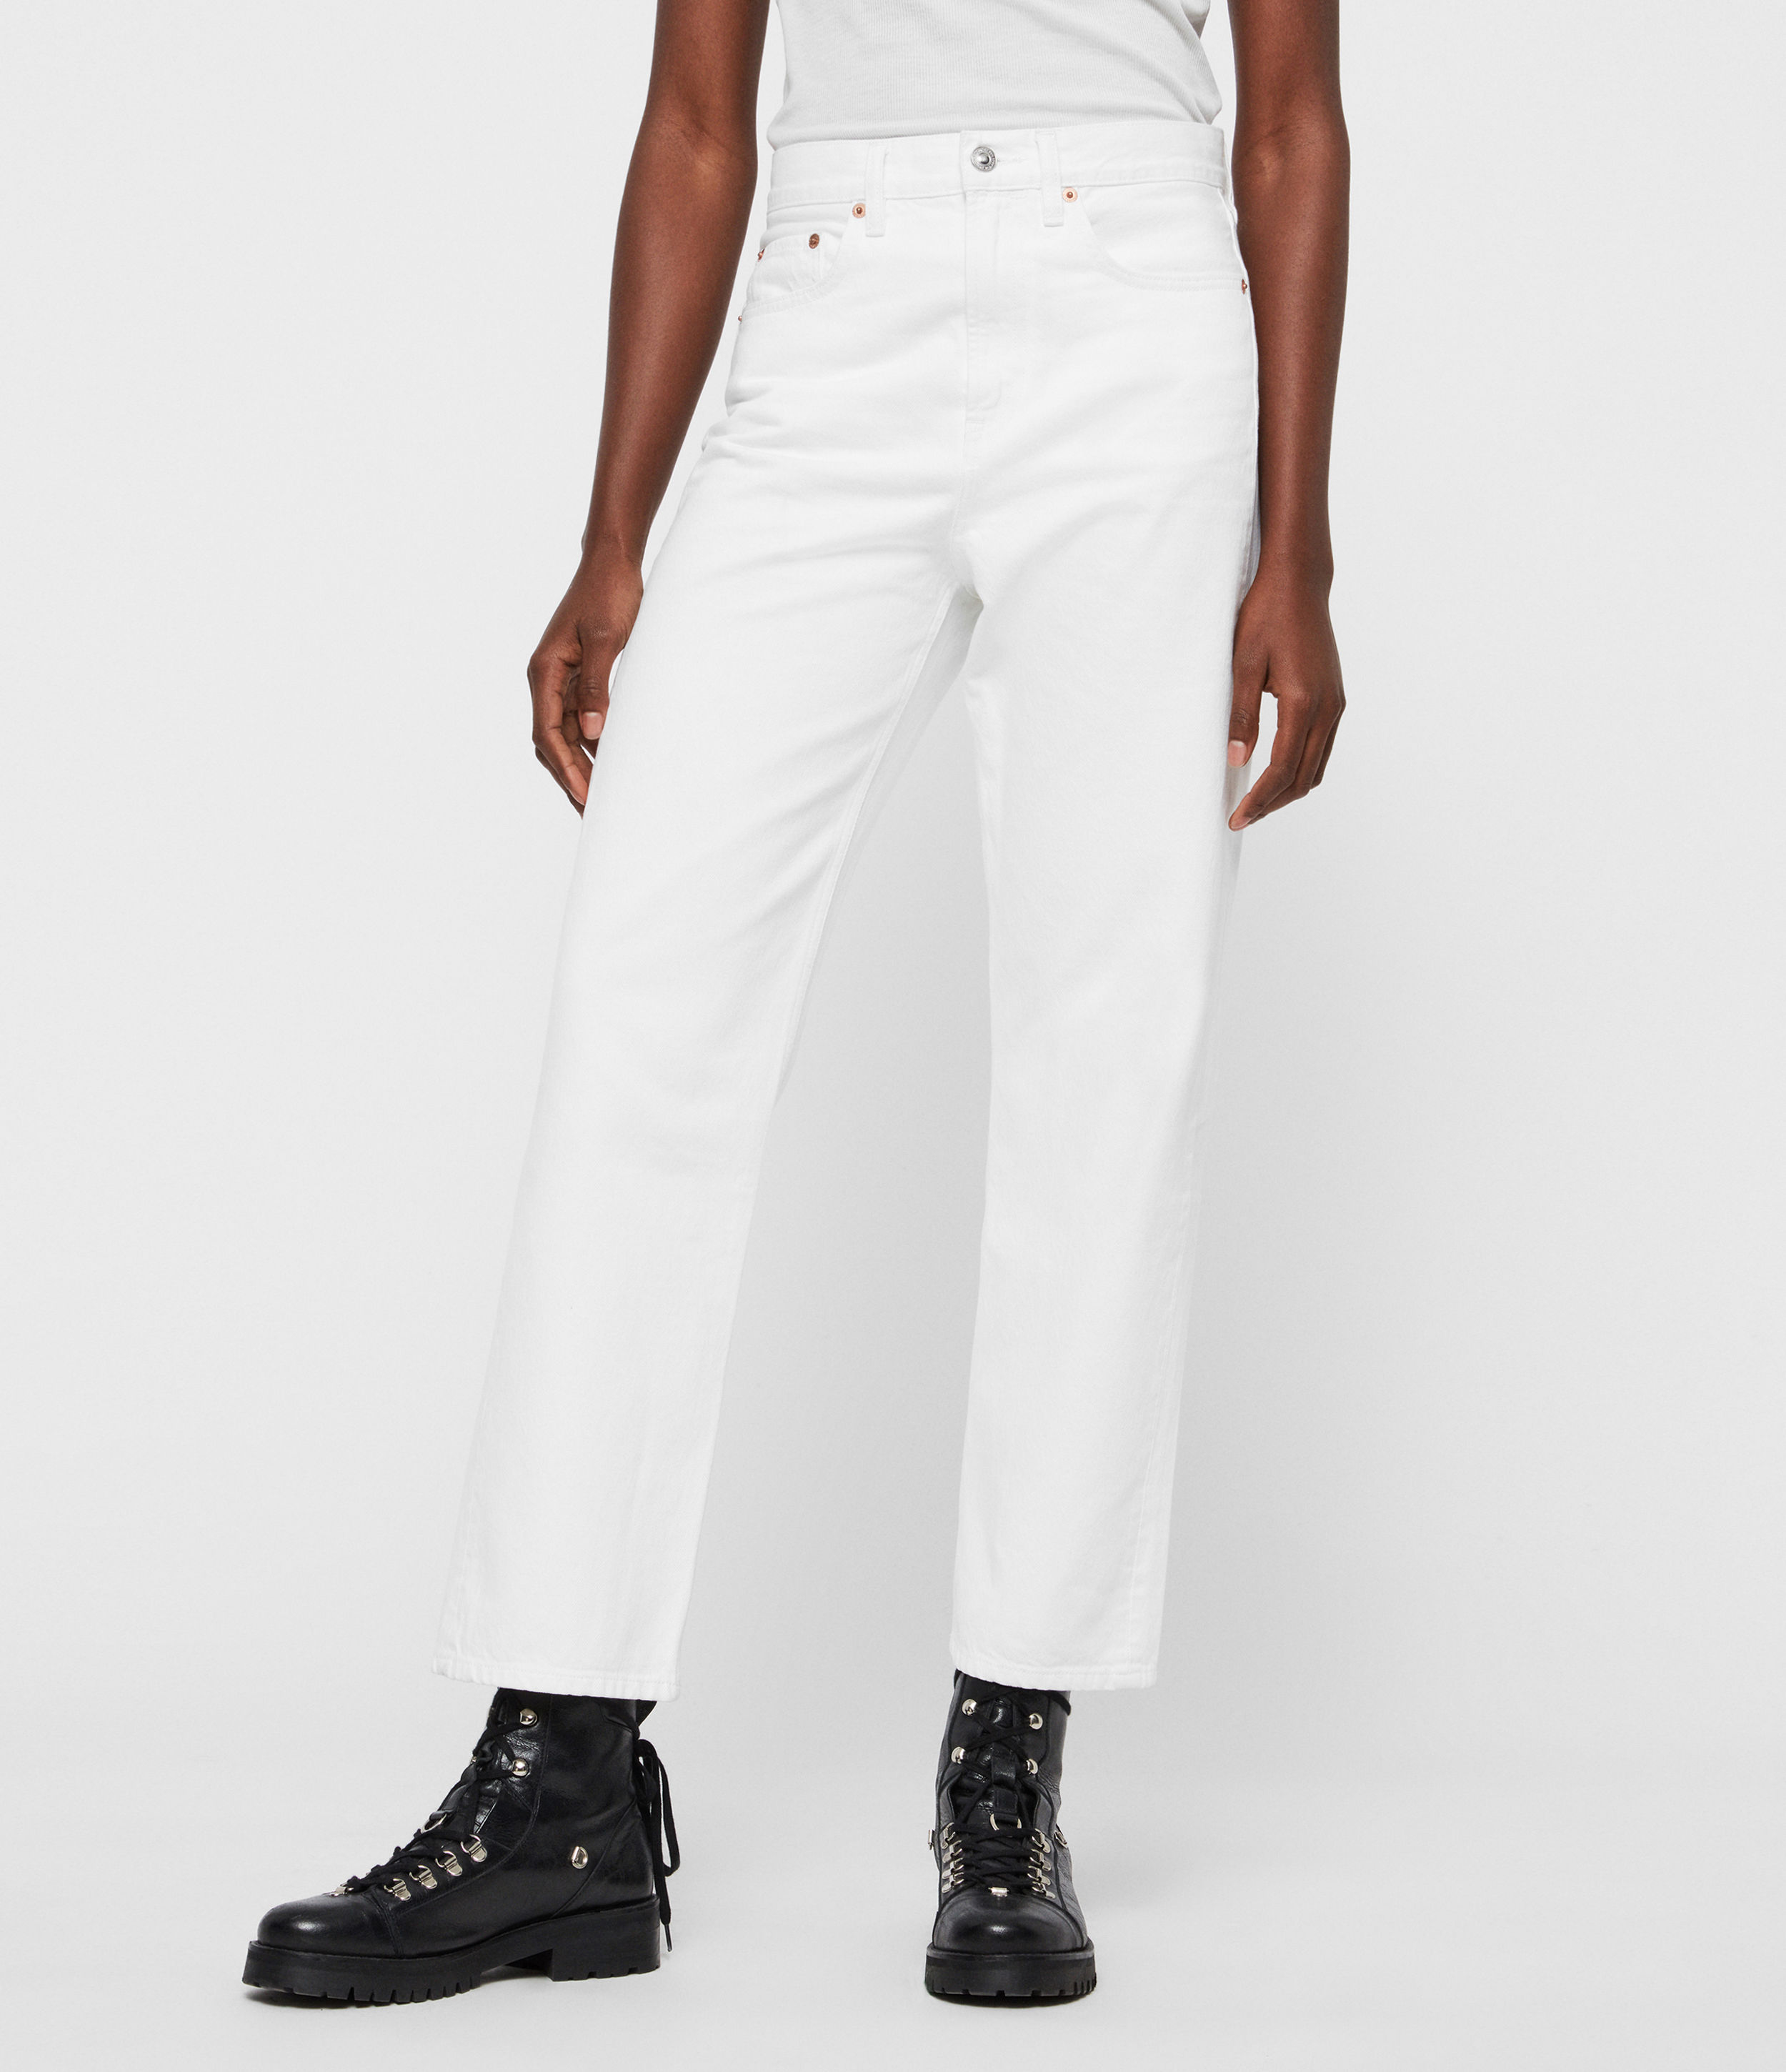 AllSaints Women's Cotton Vintage Mari High-Rise Cropped Boyfriend Jeans, White, Size: 30